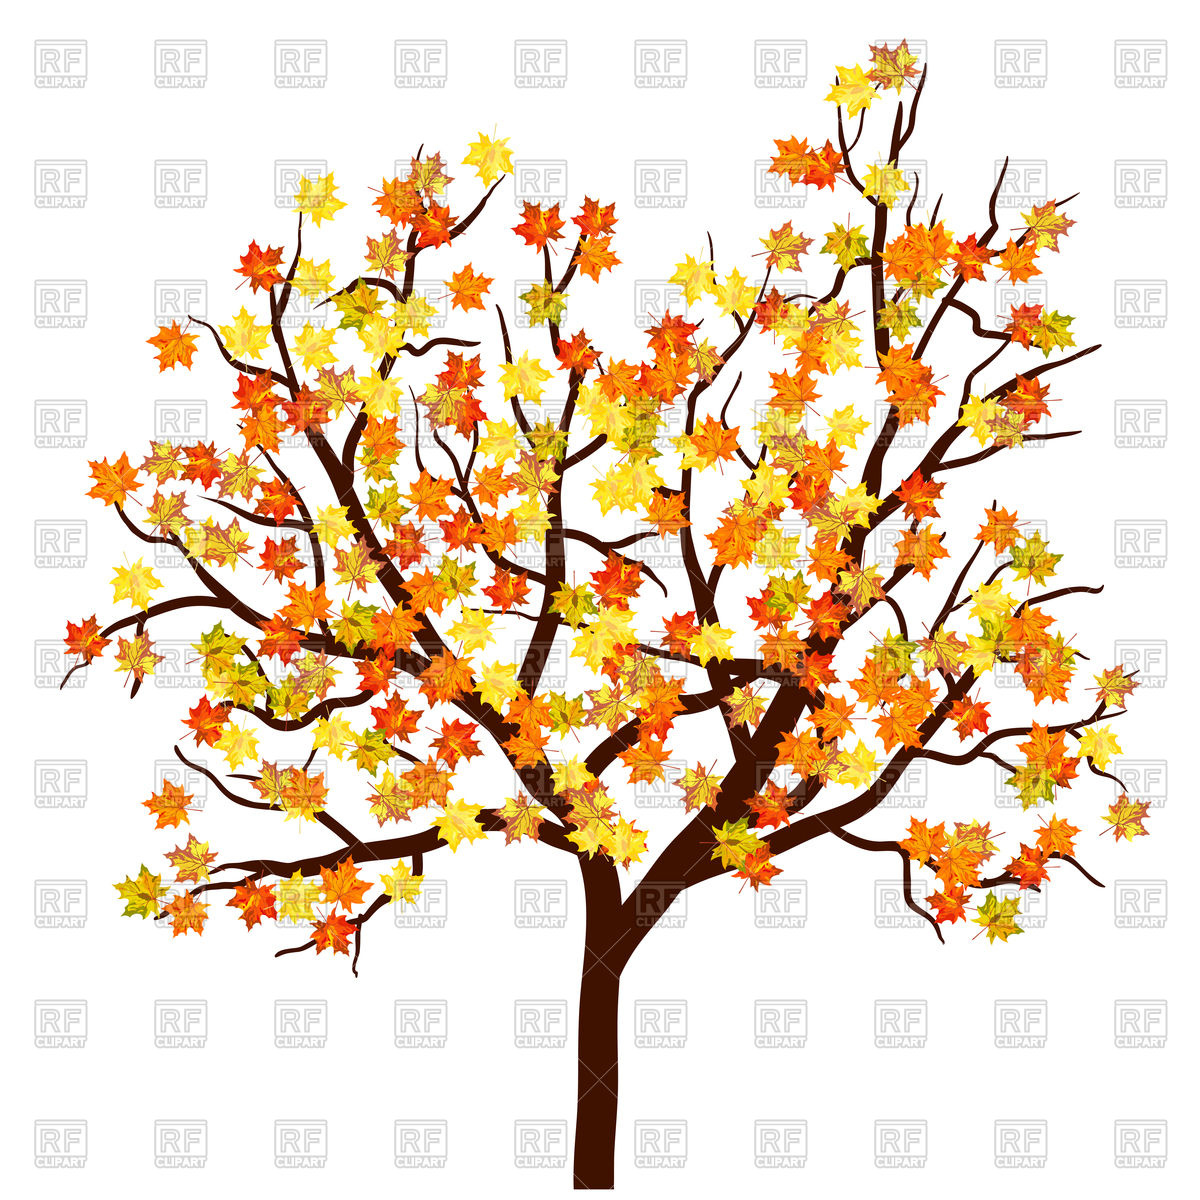 Autumn maple tree Vector Image #107946.